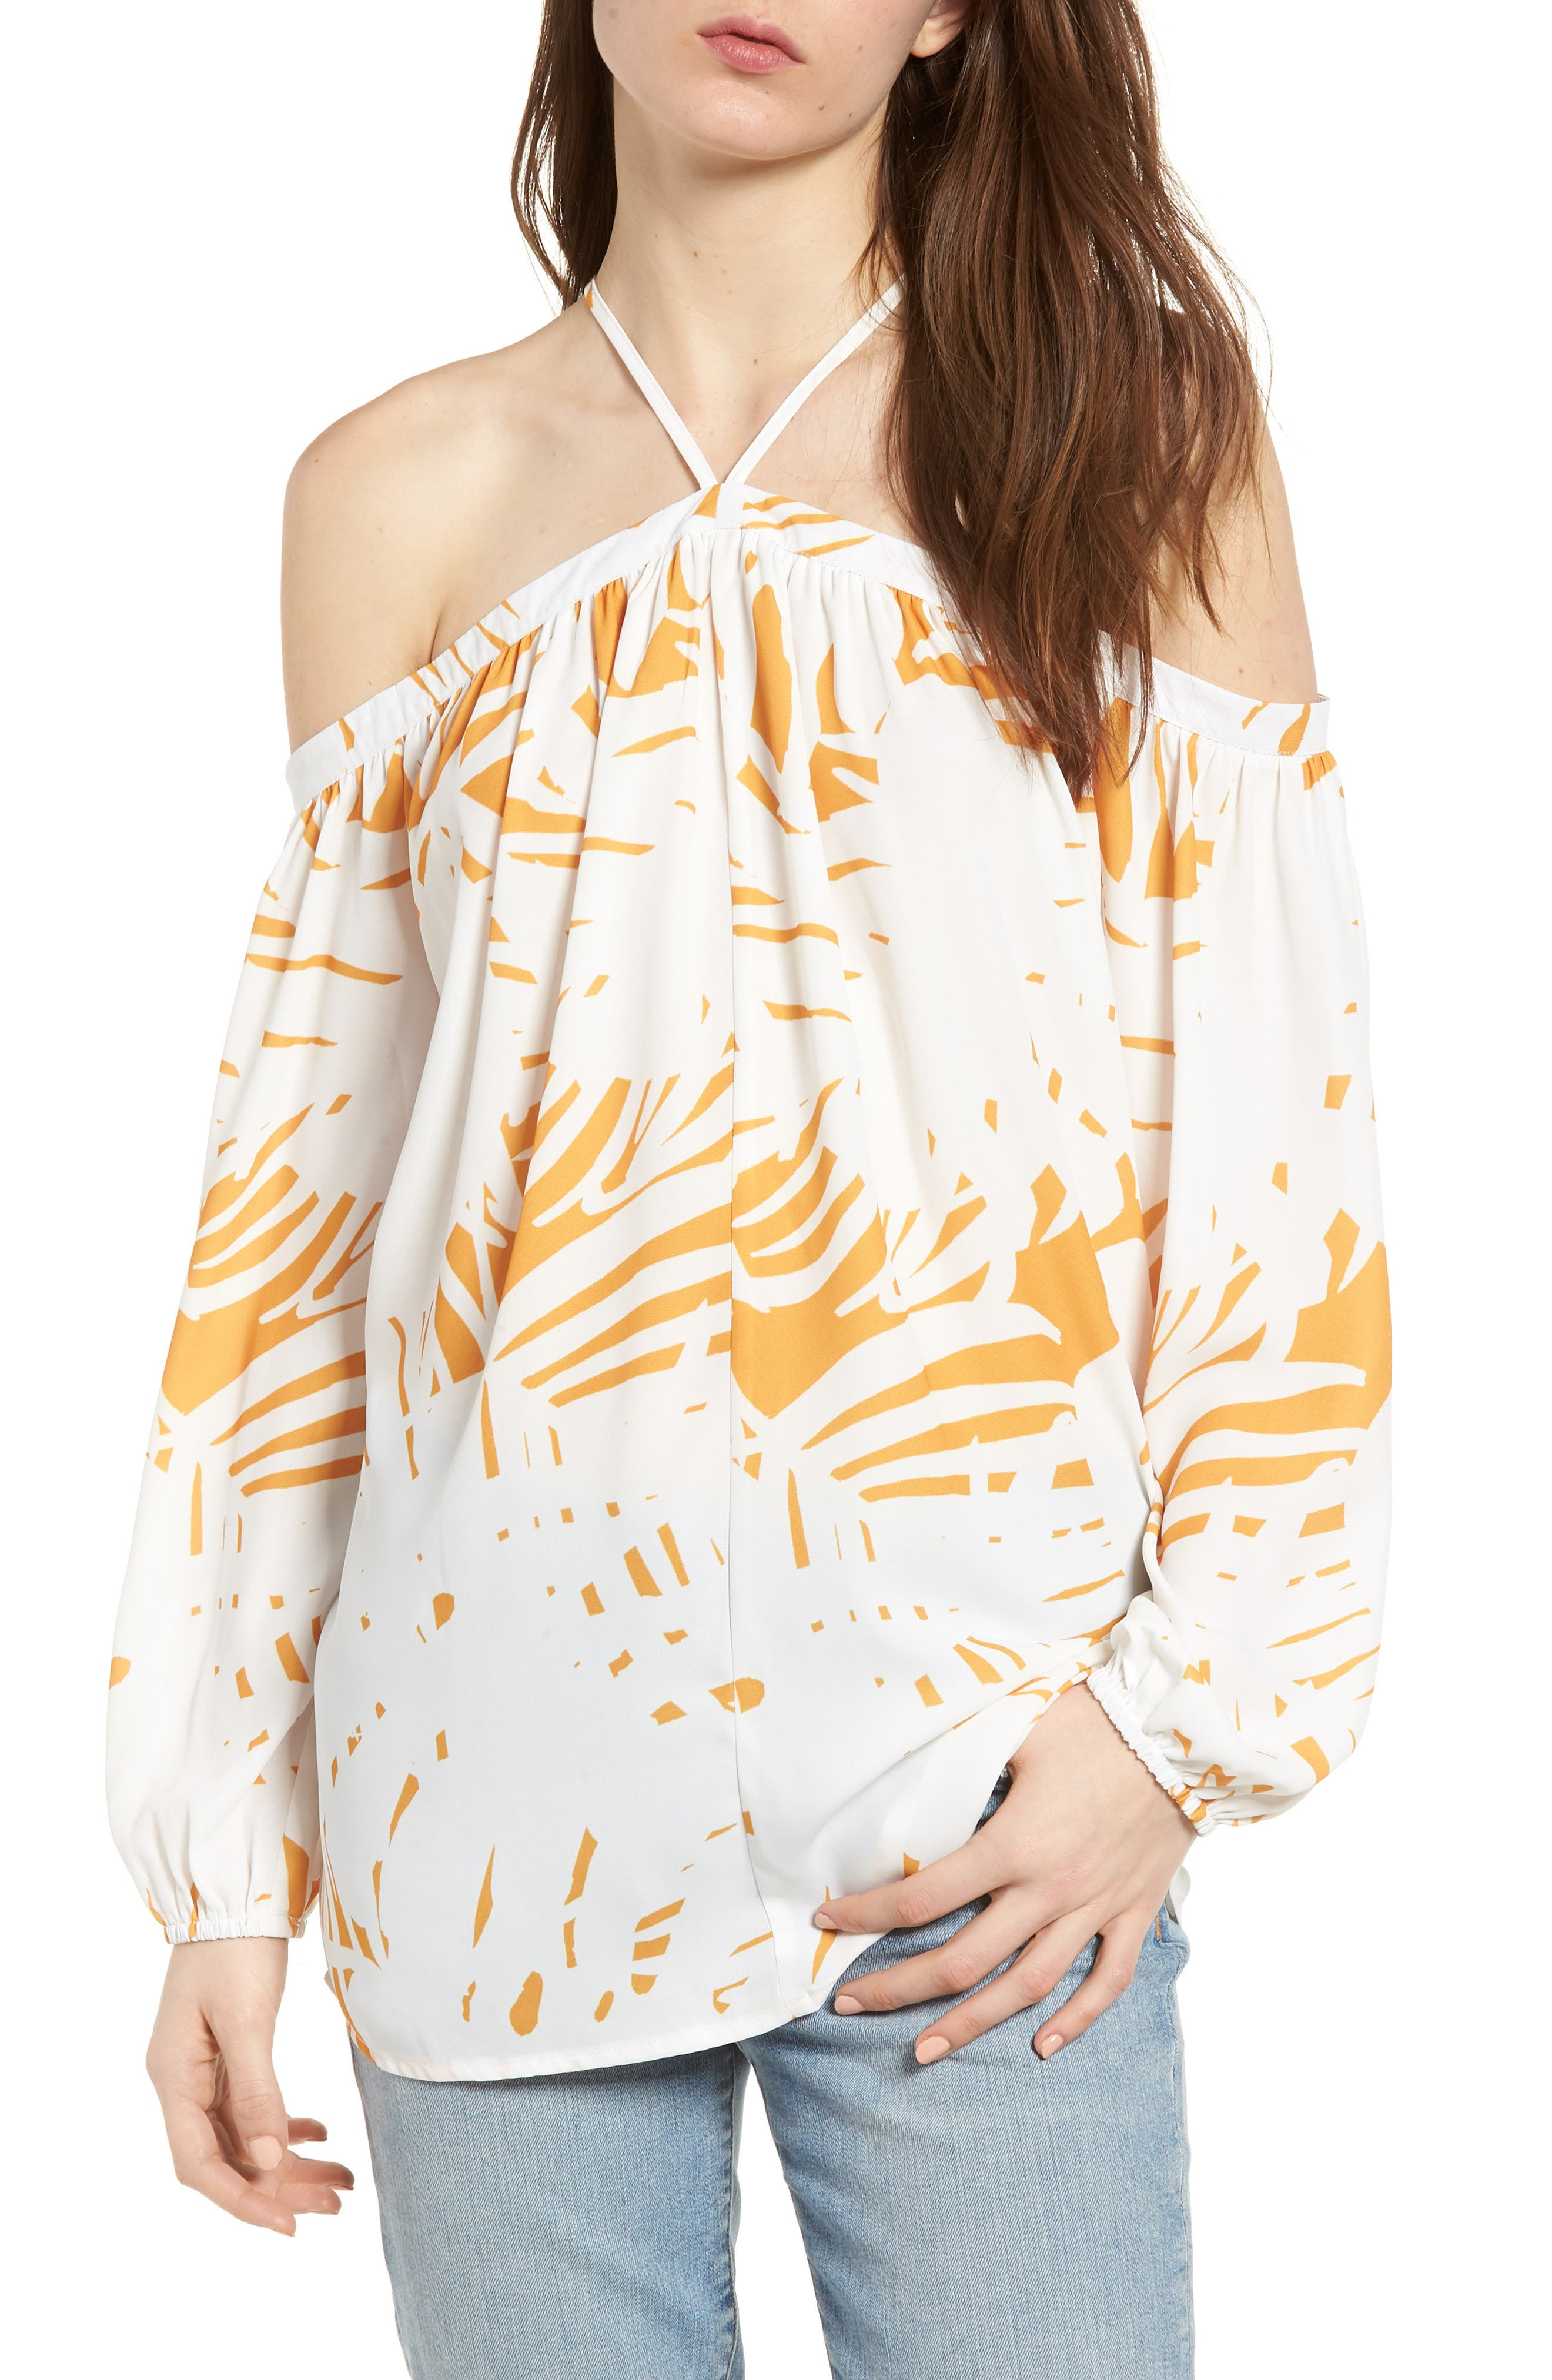 Bishop + Young Ana Palm Print Off the Shoulder Top,                             Main thumbnail 1, color,                             400